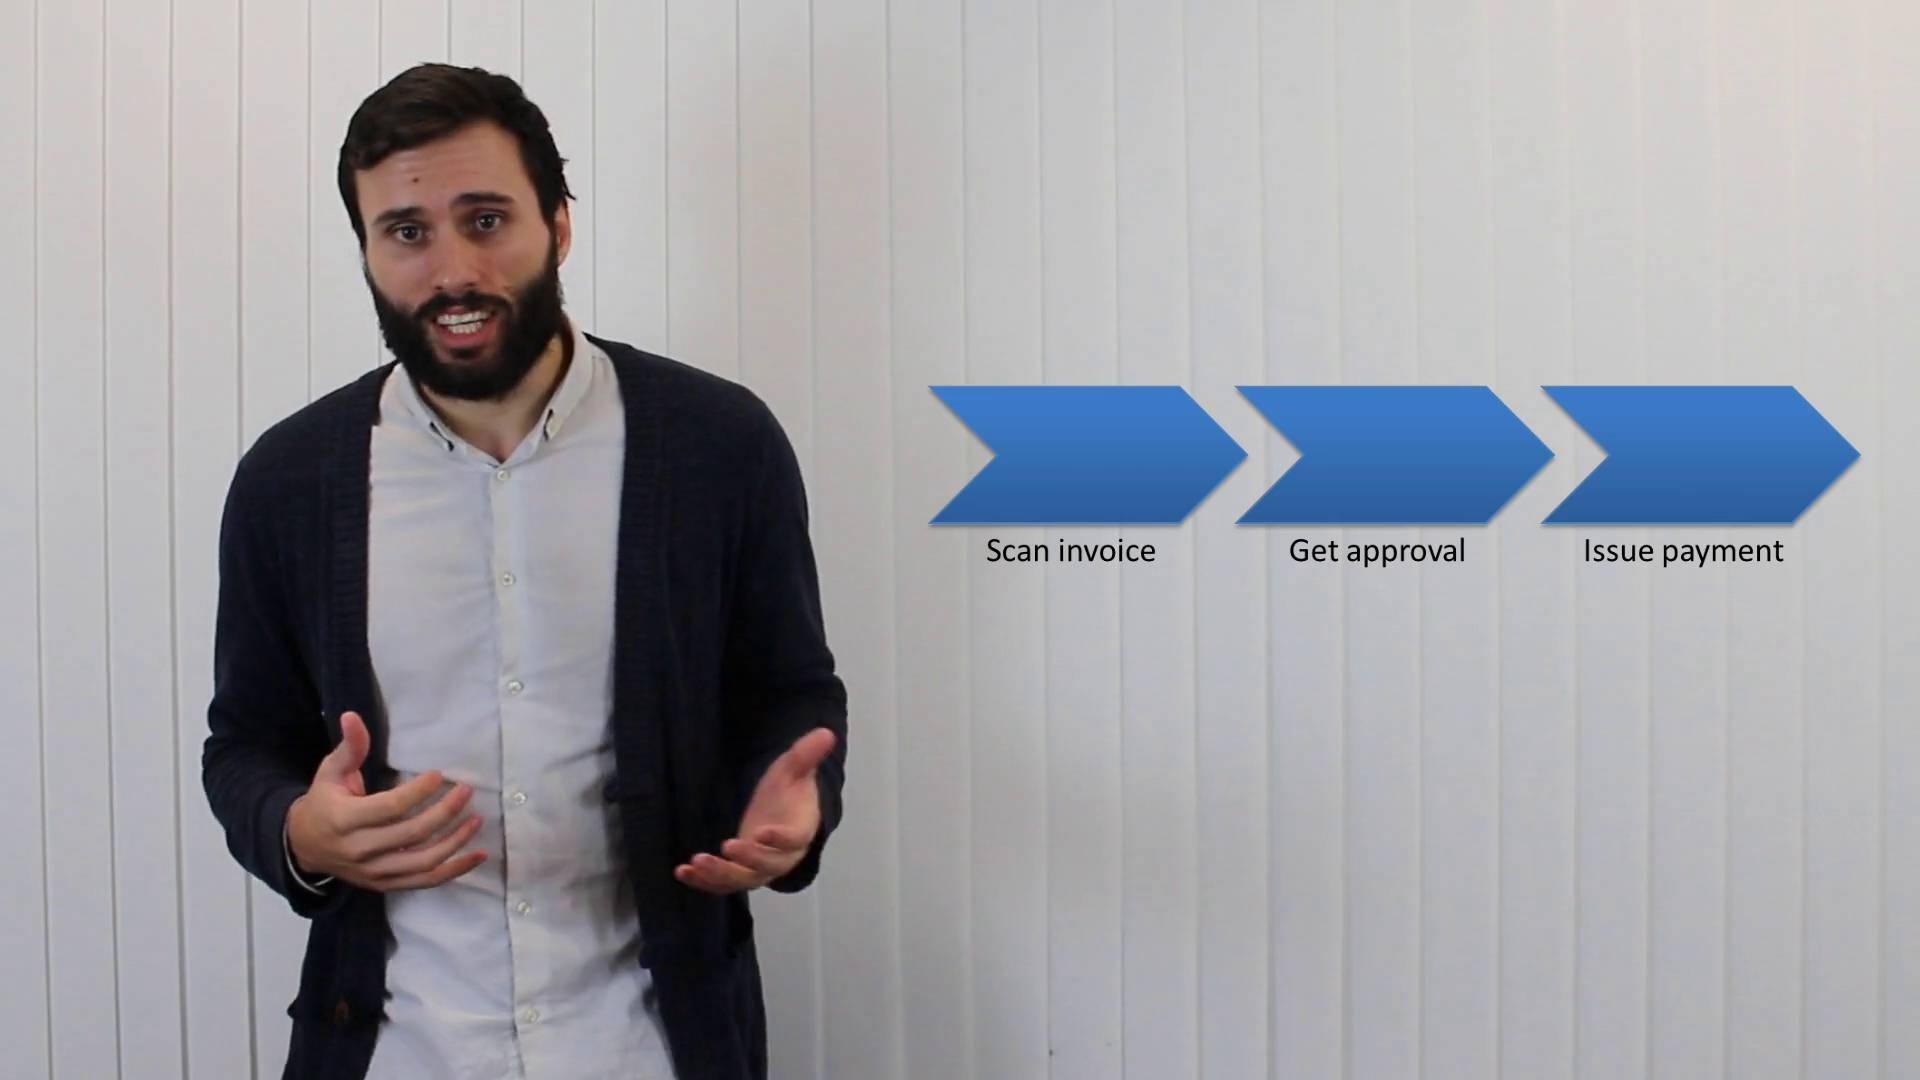 Process Hierarchies: Process Mapping Without the Complexity [Video]